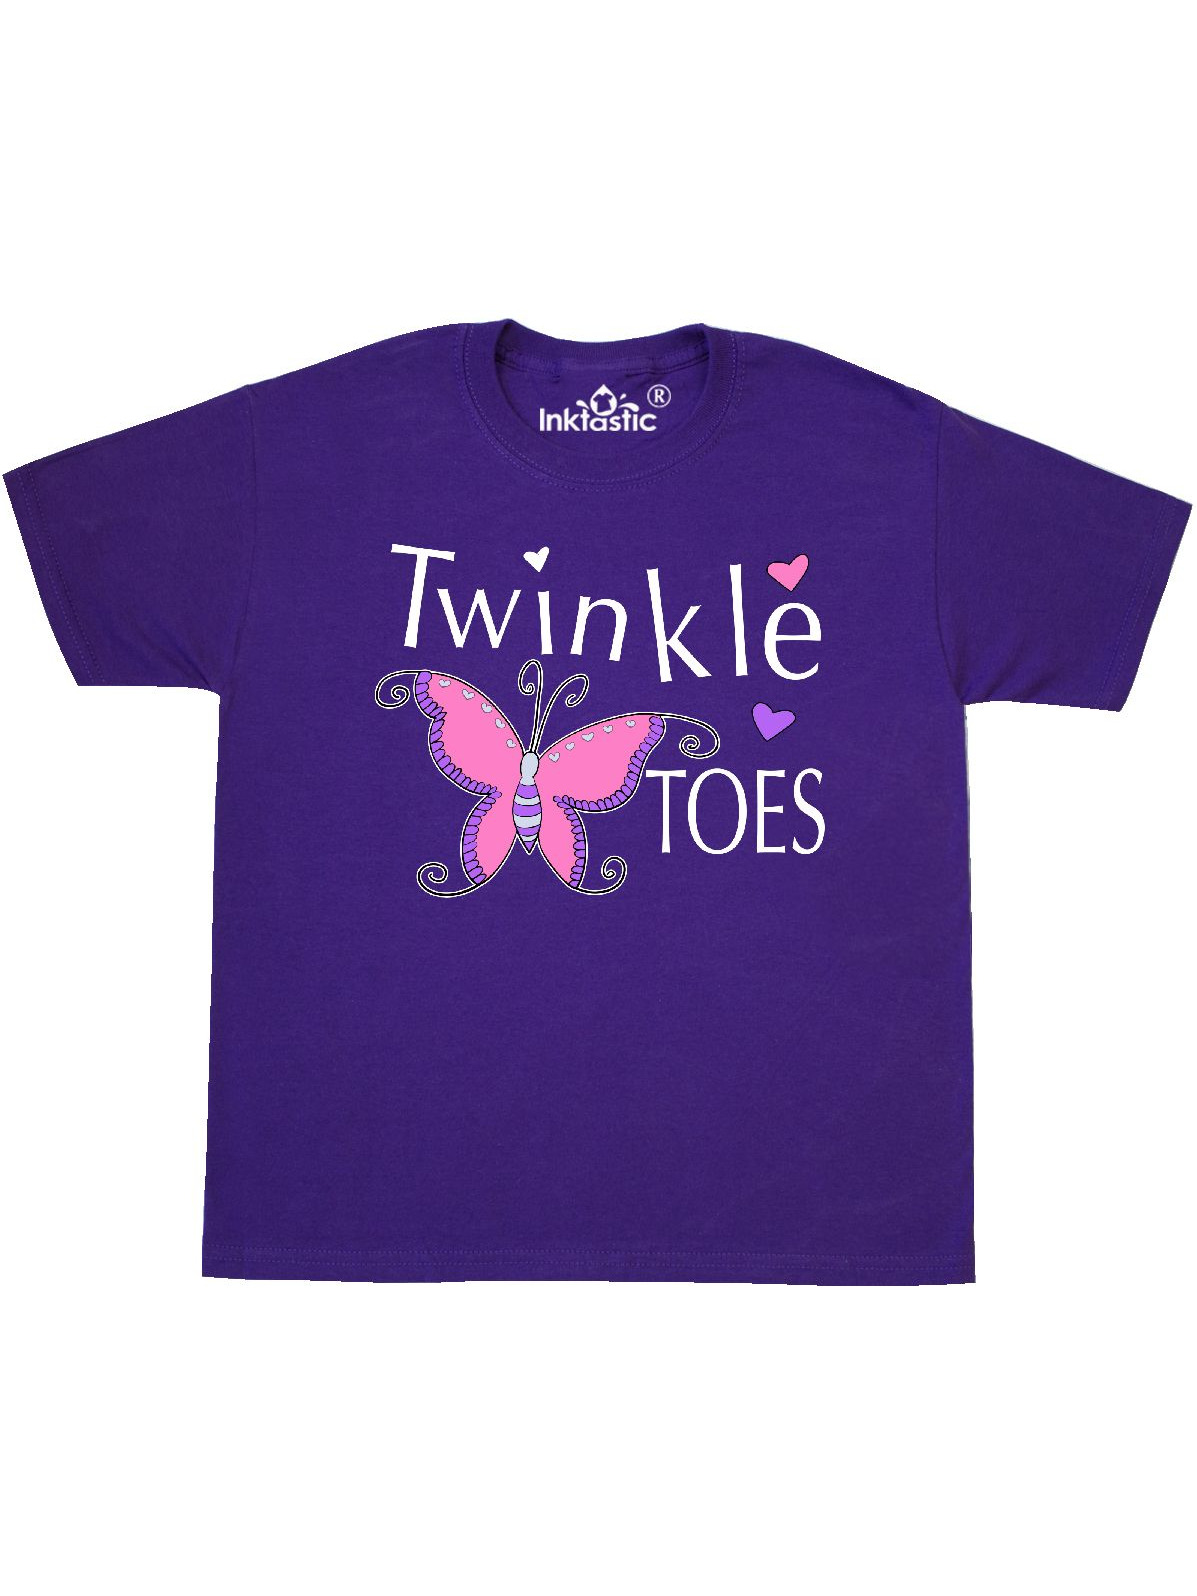 inktastic Twinkle Toes Toddler T-Shirt